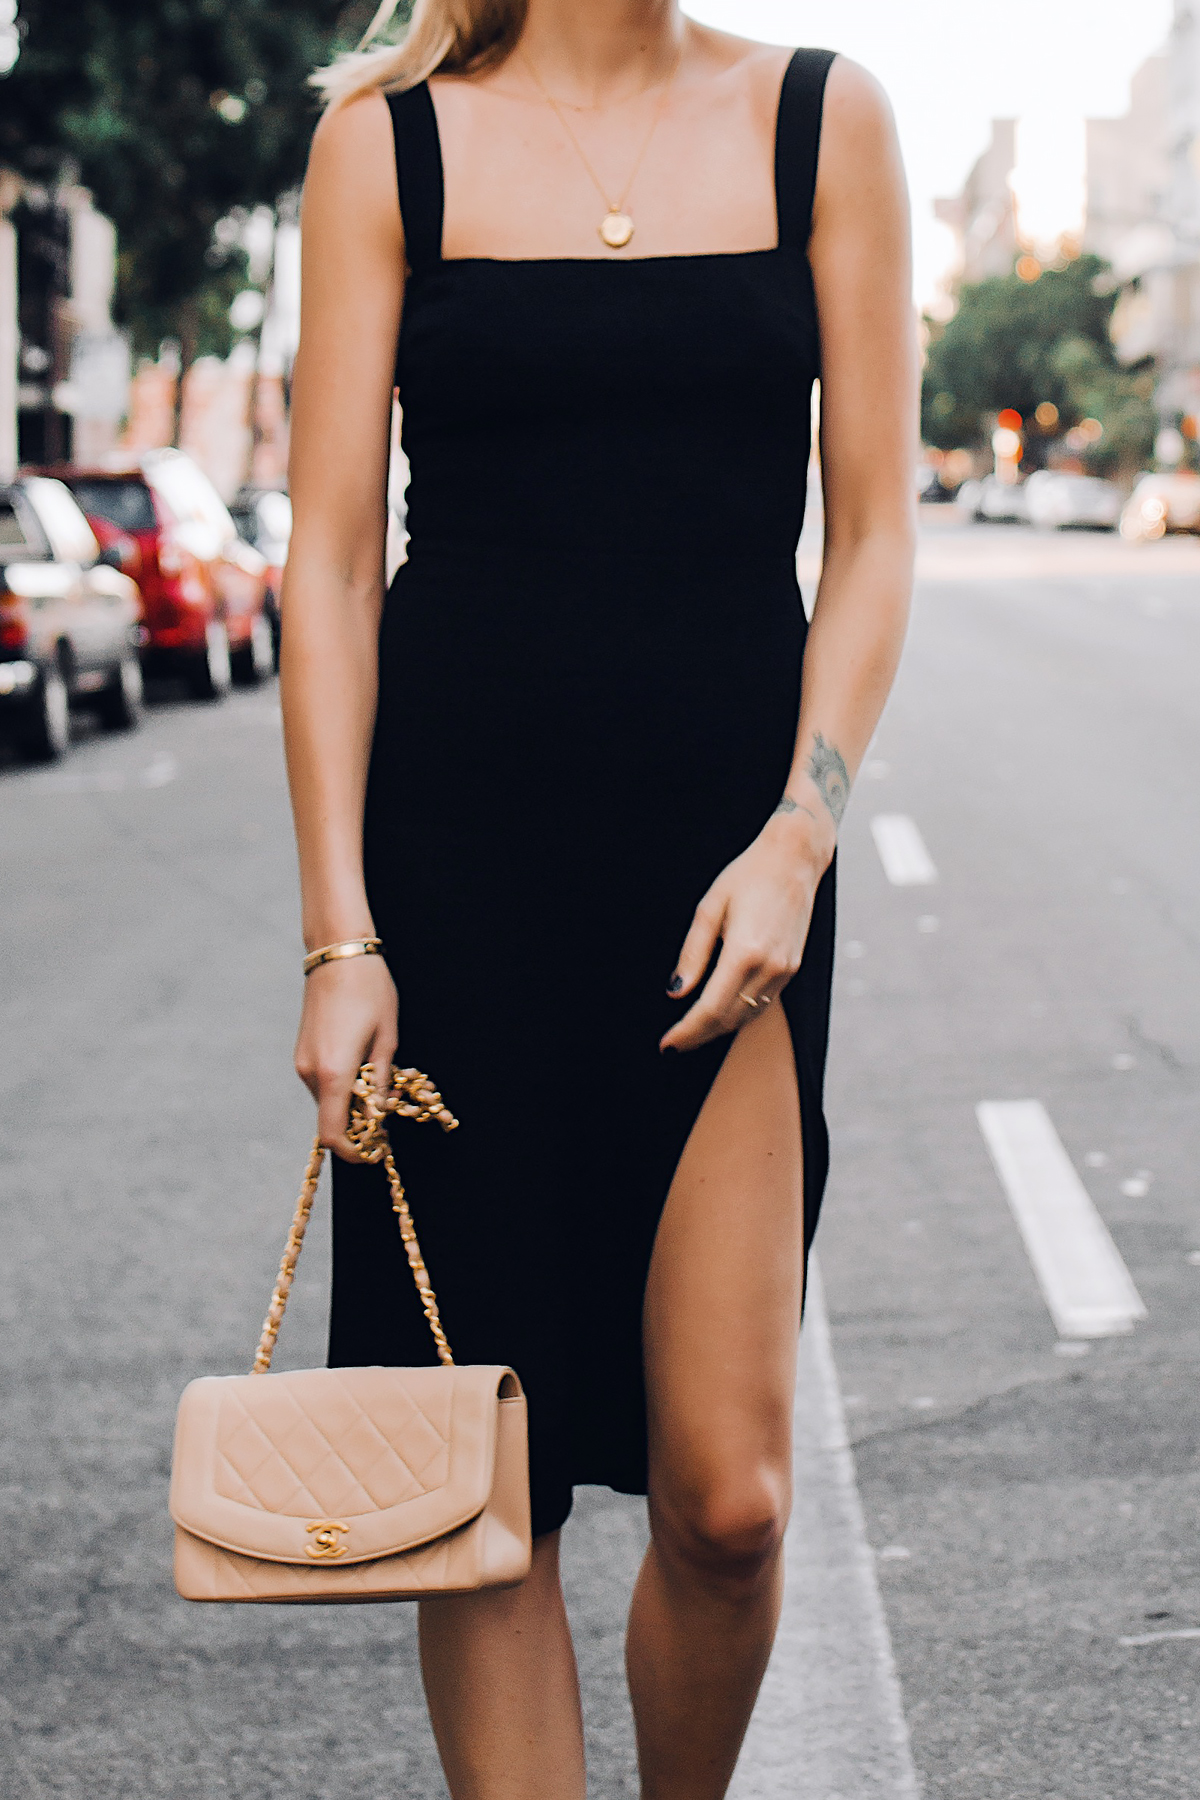 79c3ed30225 Woman Wearing Reformation Black Dress Chanel Tan Diana Handbag Gold Coin  Necklace Fashion Jackson San Diego